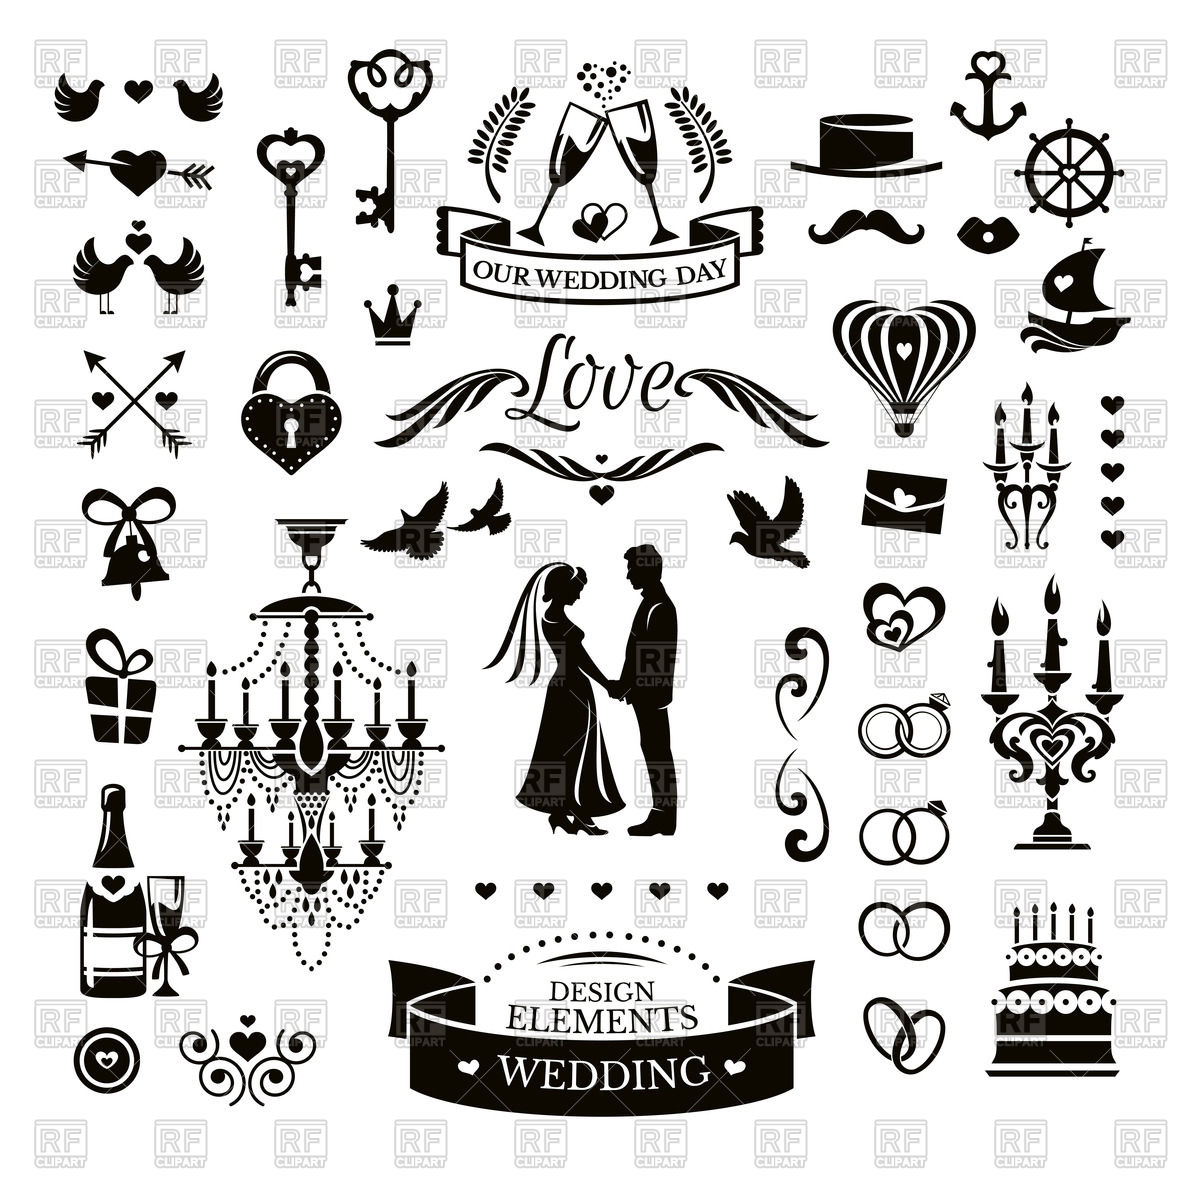 1200x1200 Wedding Icons And Design Elements Vector Image Vector Artwork Of